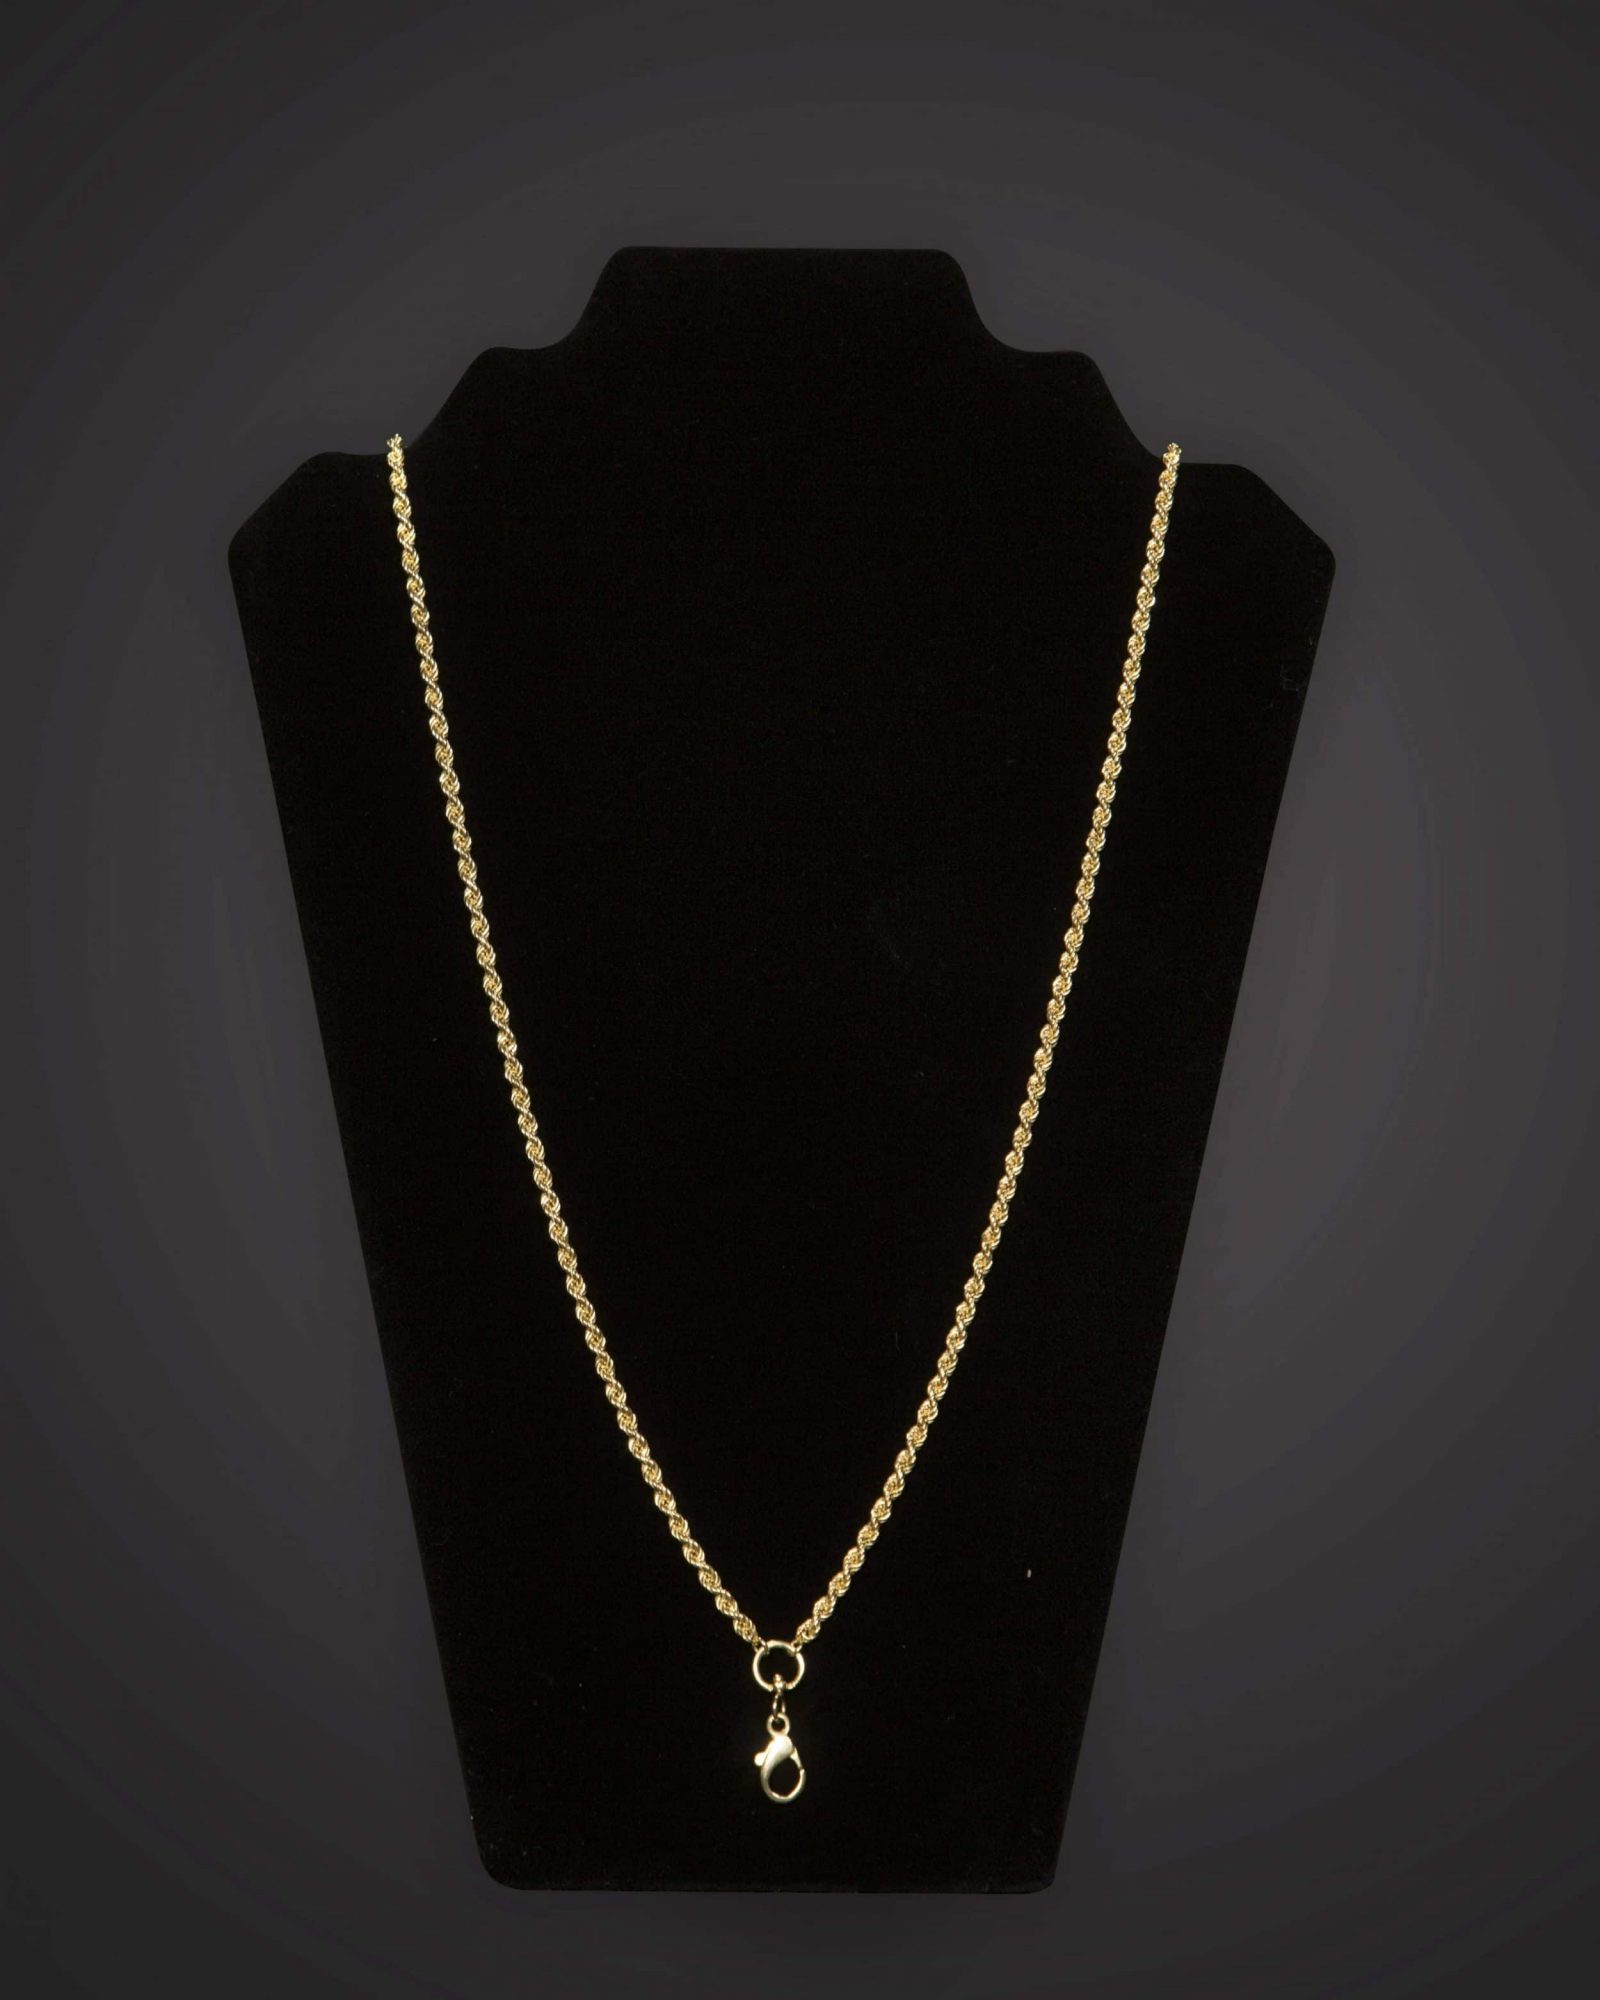 Pectoral Chain - Braided - Short - Gold Plated